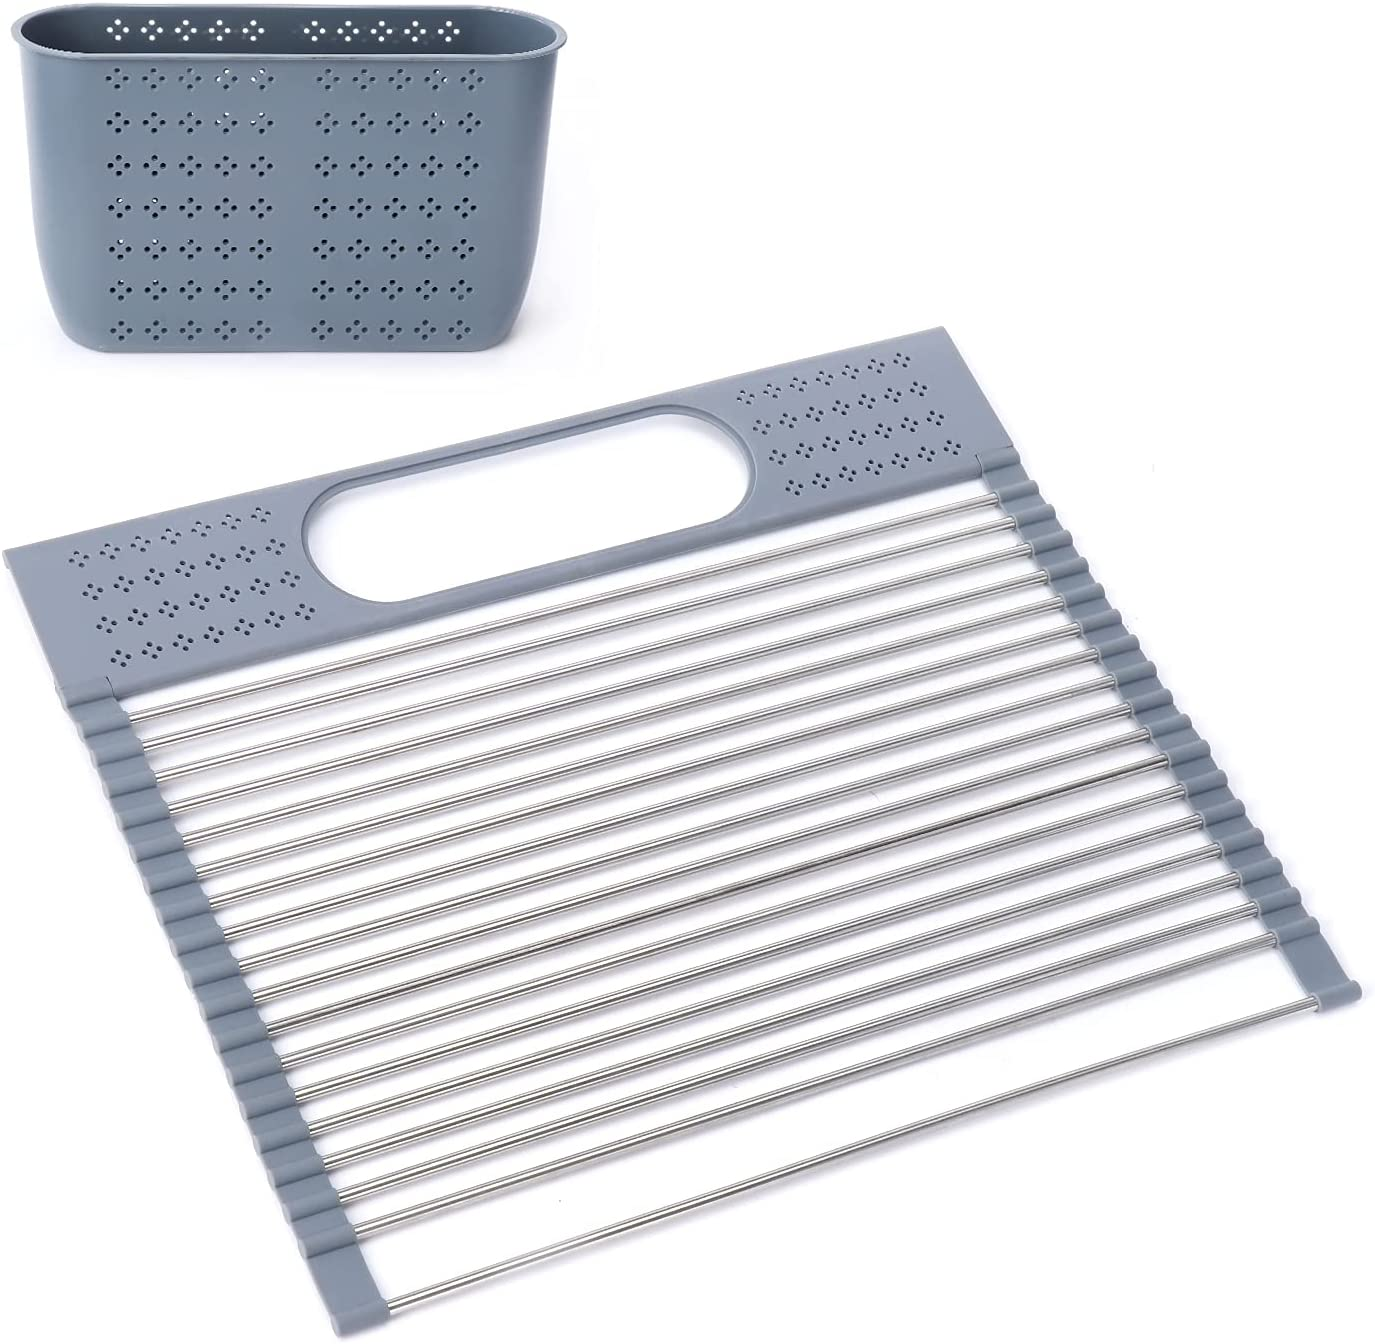 New product Roll Up Dish Drying Rack Denver Mall Over Resistant Multipurp The Sink Heat